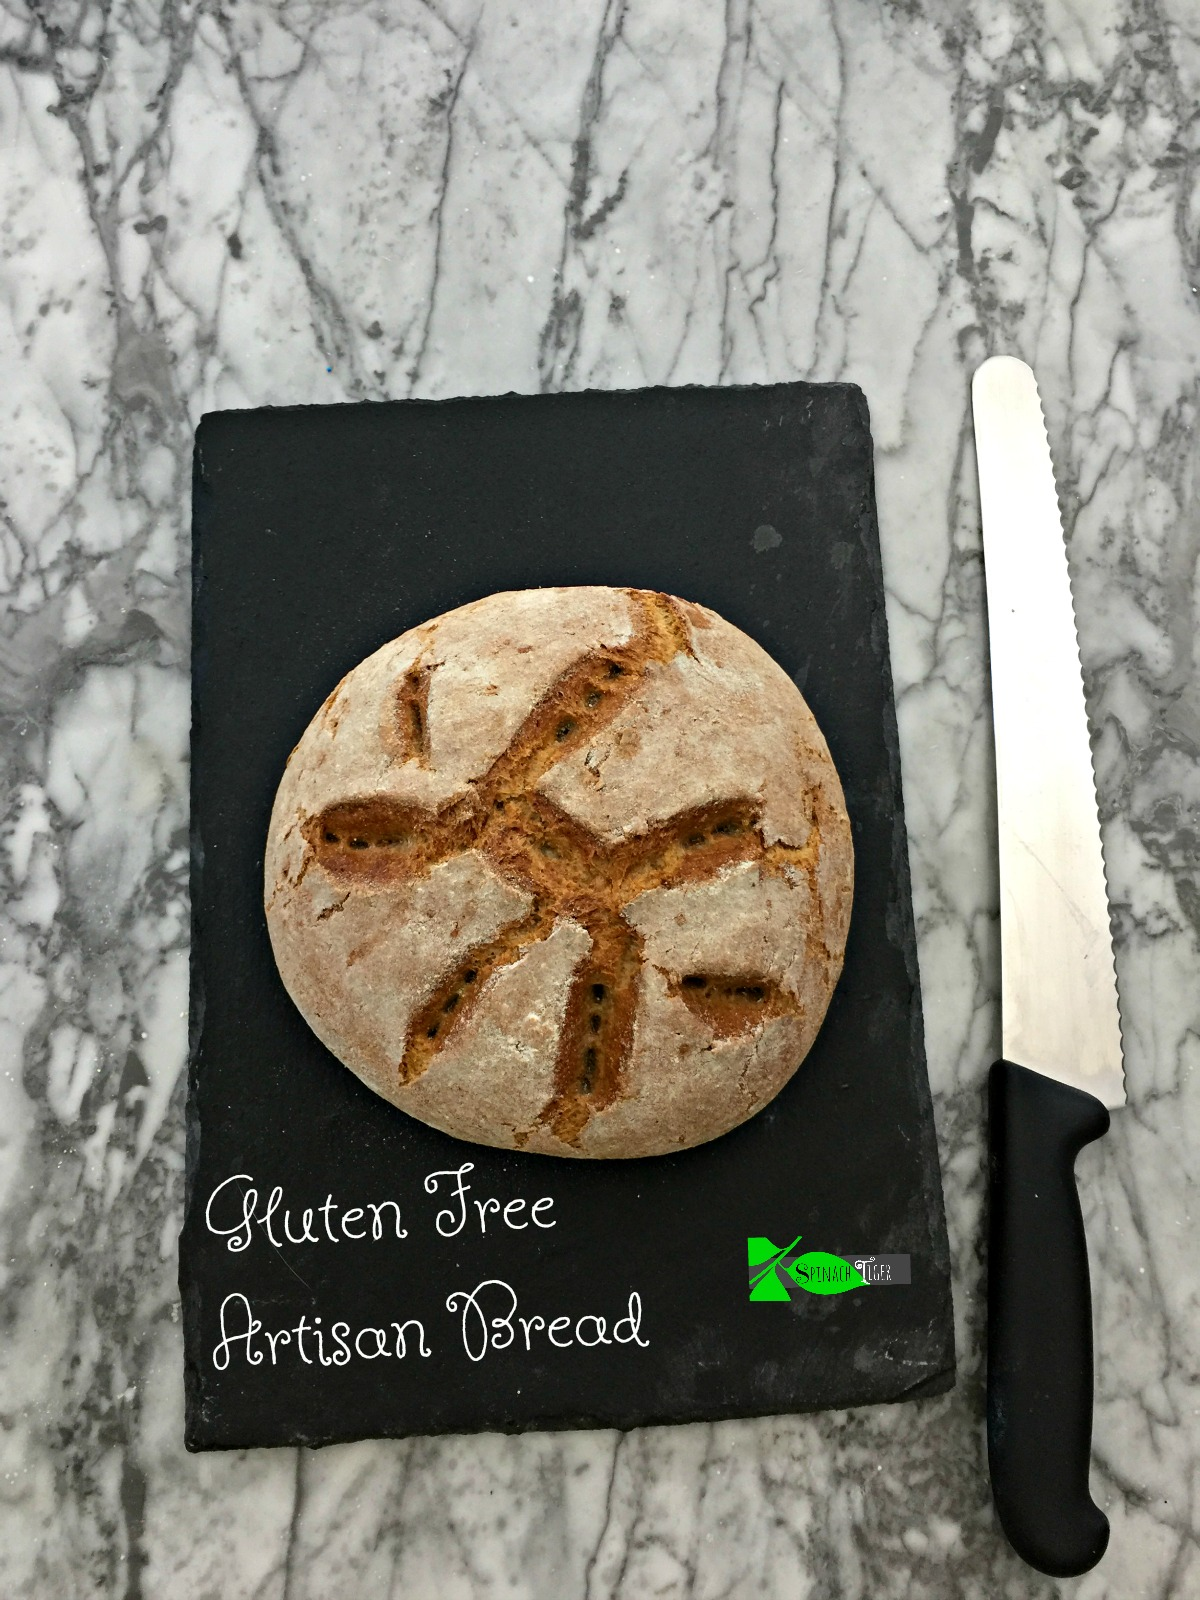 Gluten Free Whole Grain Bread with Video from Spinach tiger